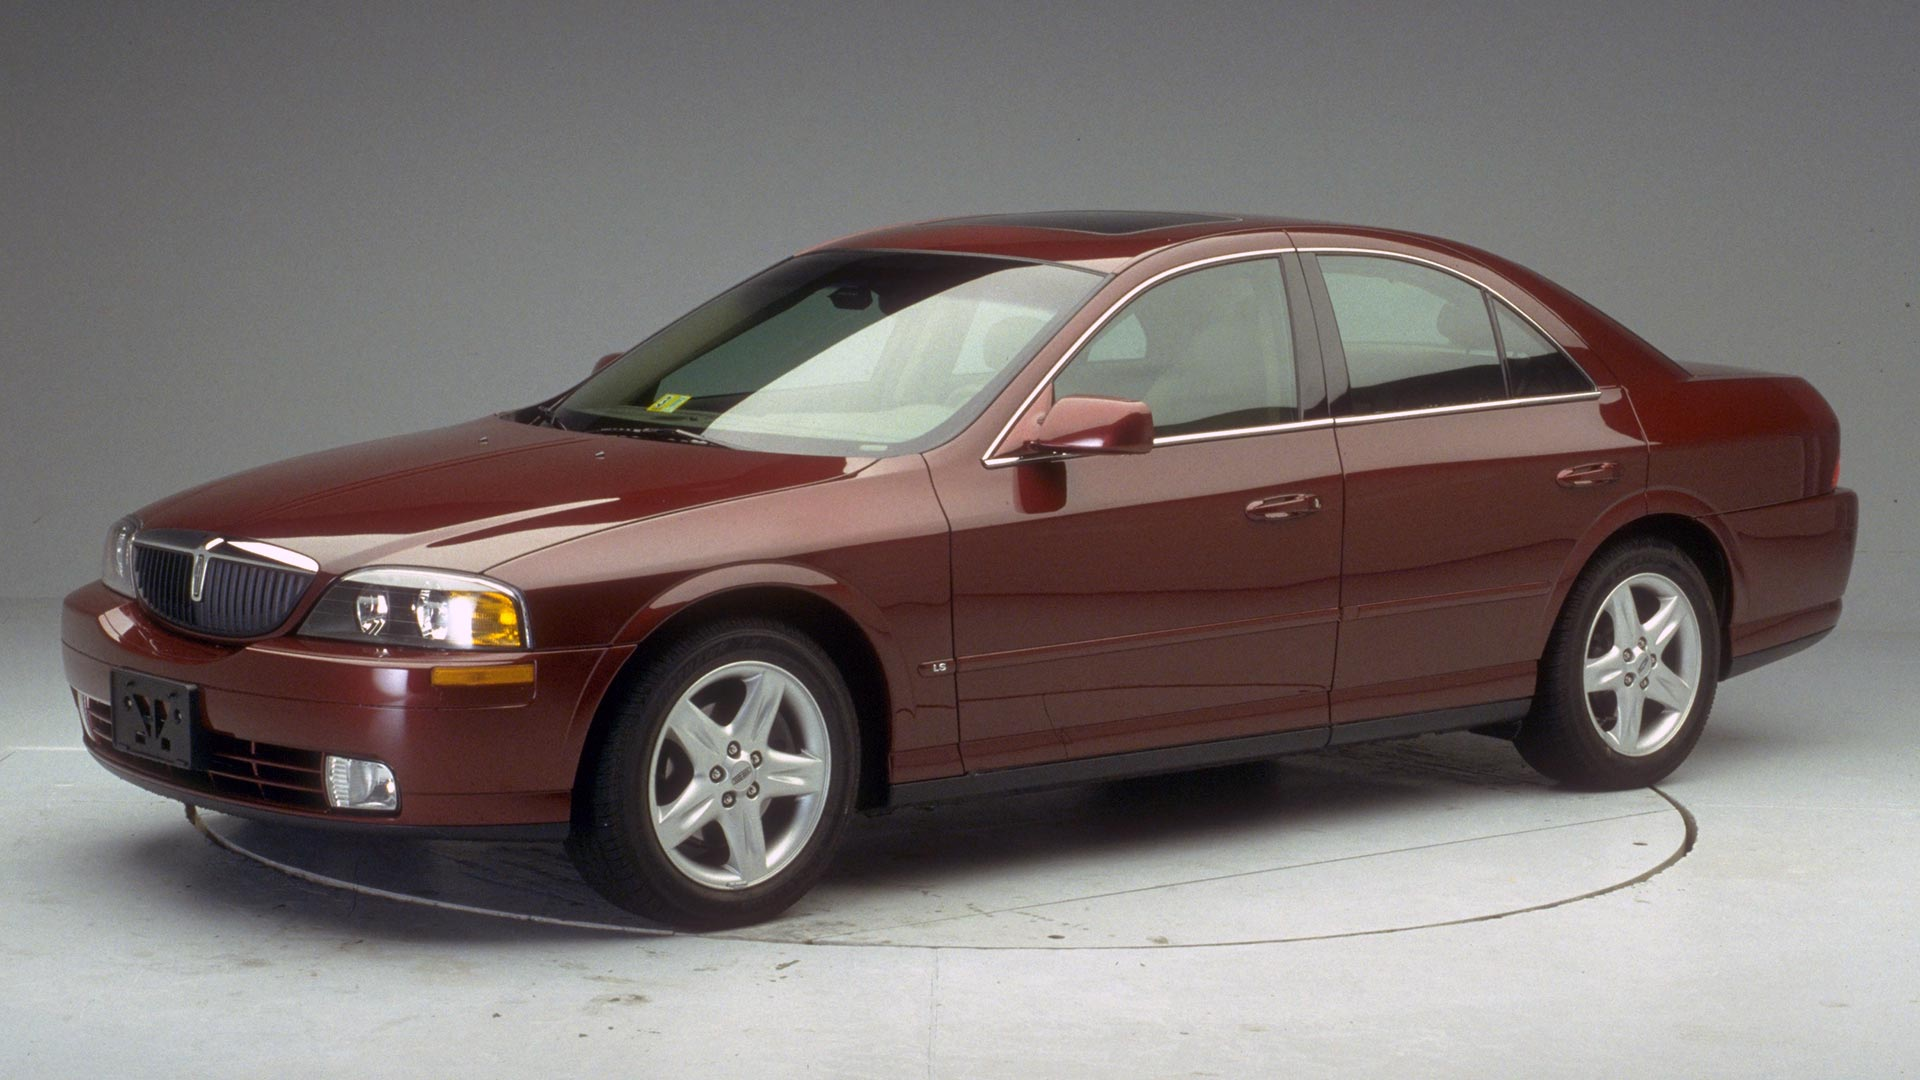 2005 Lincoln LS 4-door sedan